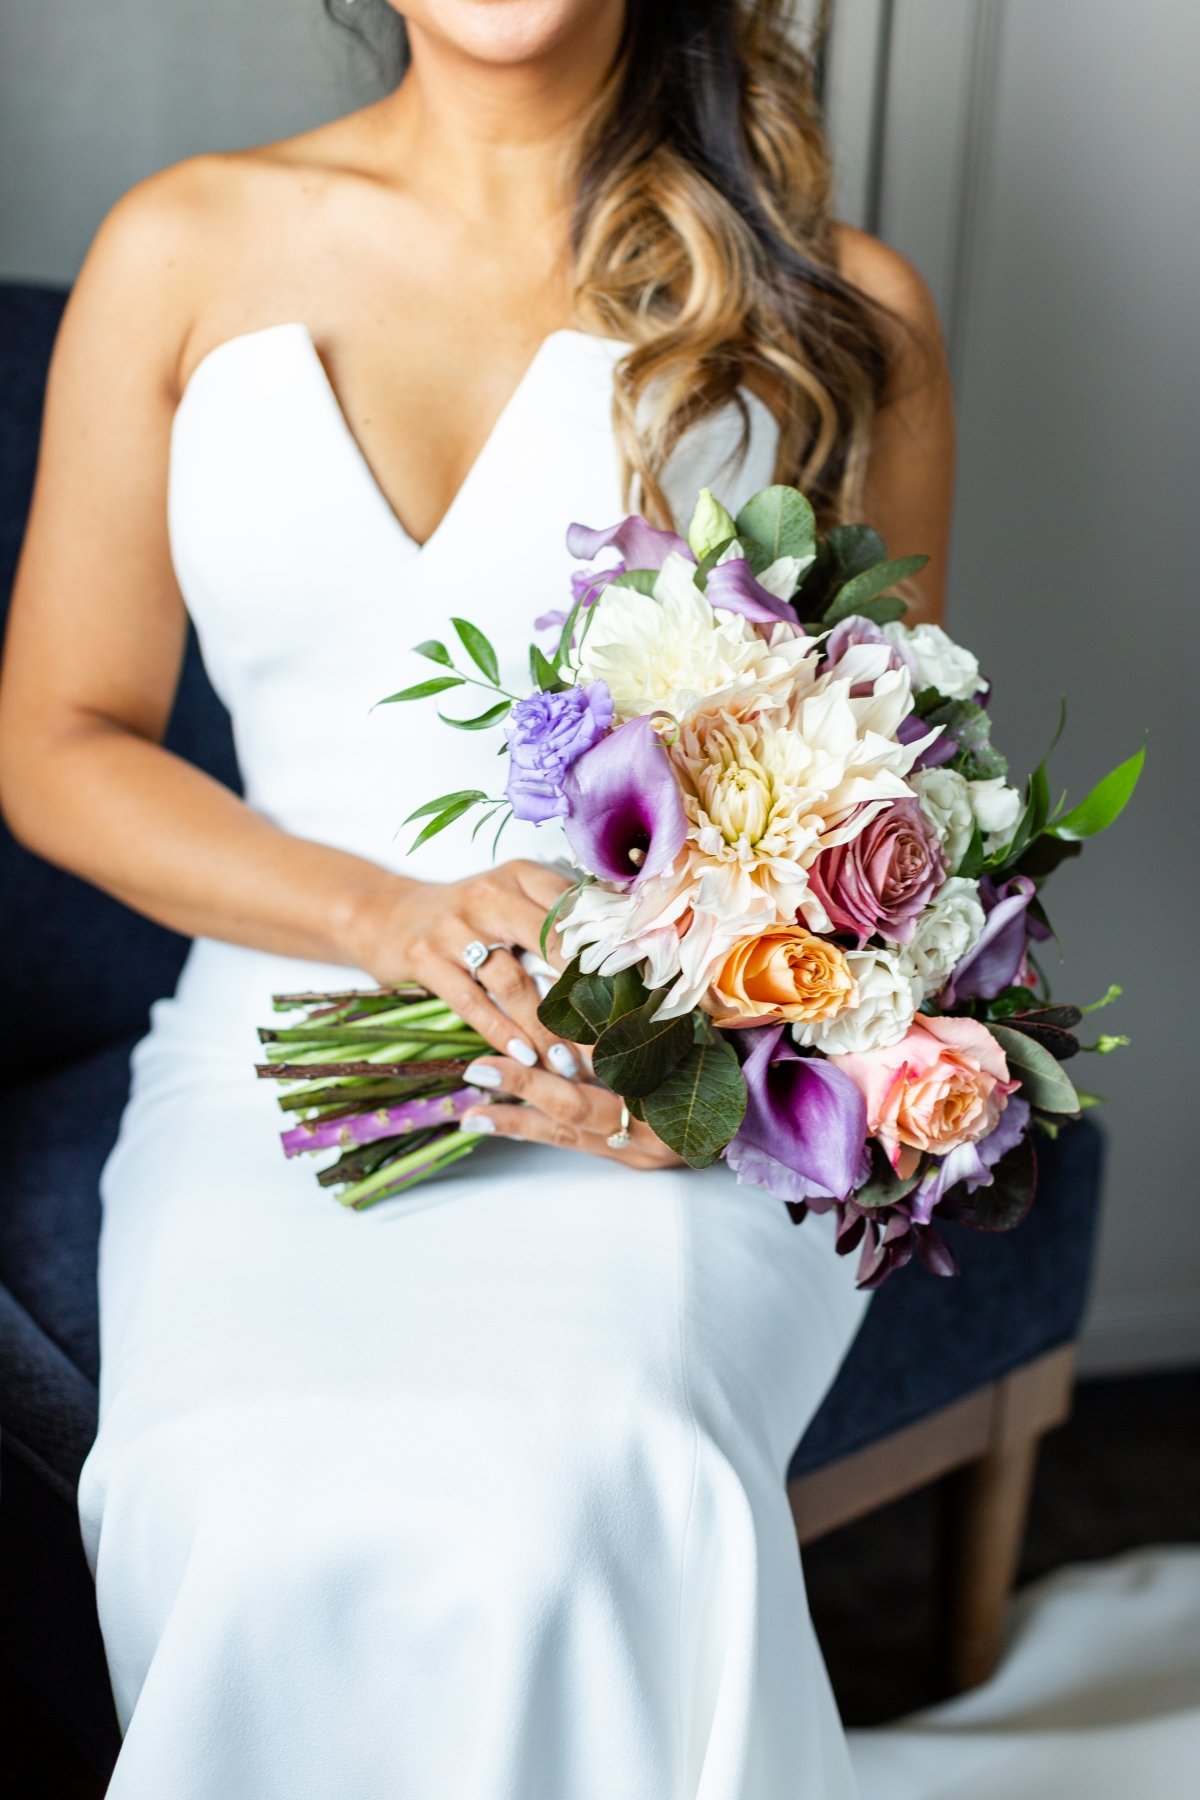 Sleek and Modern with a Splash of Color at Venue SIX10